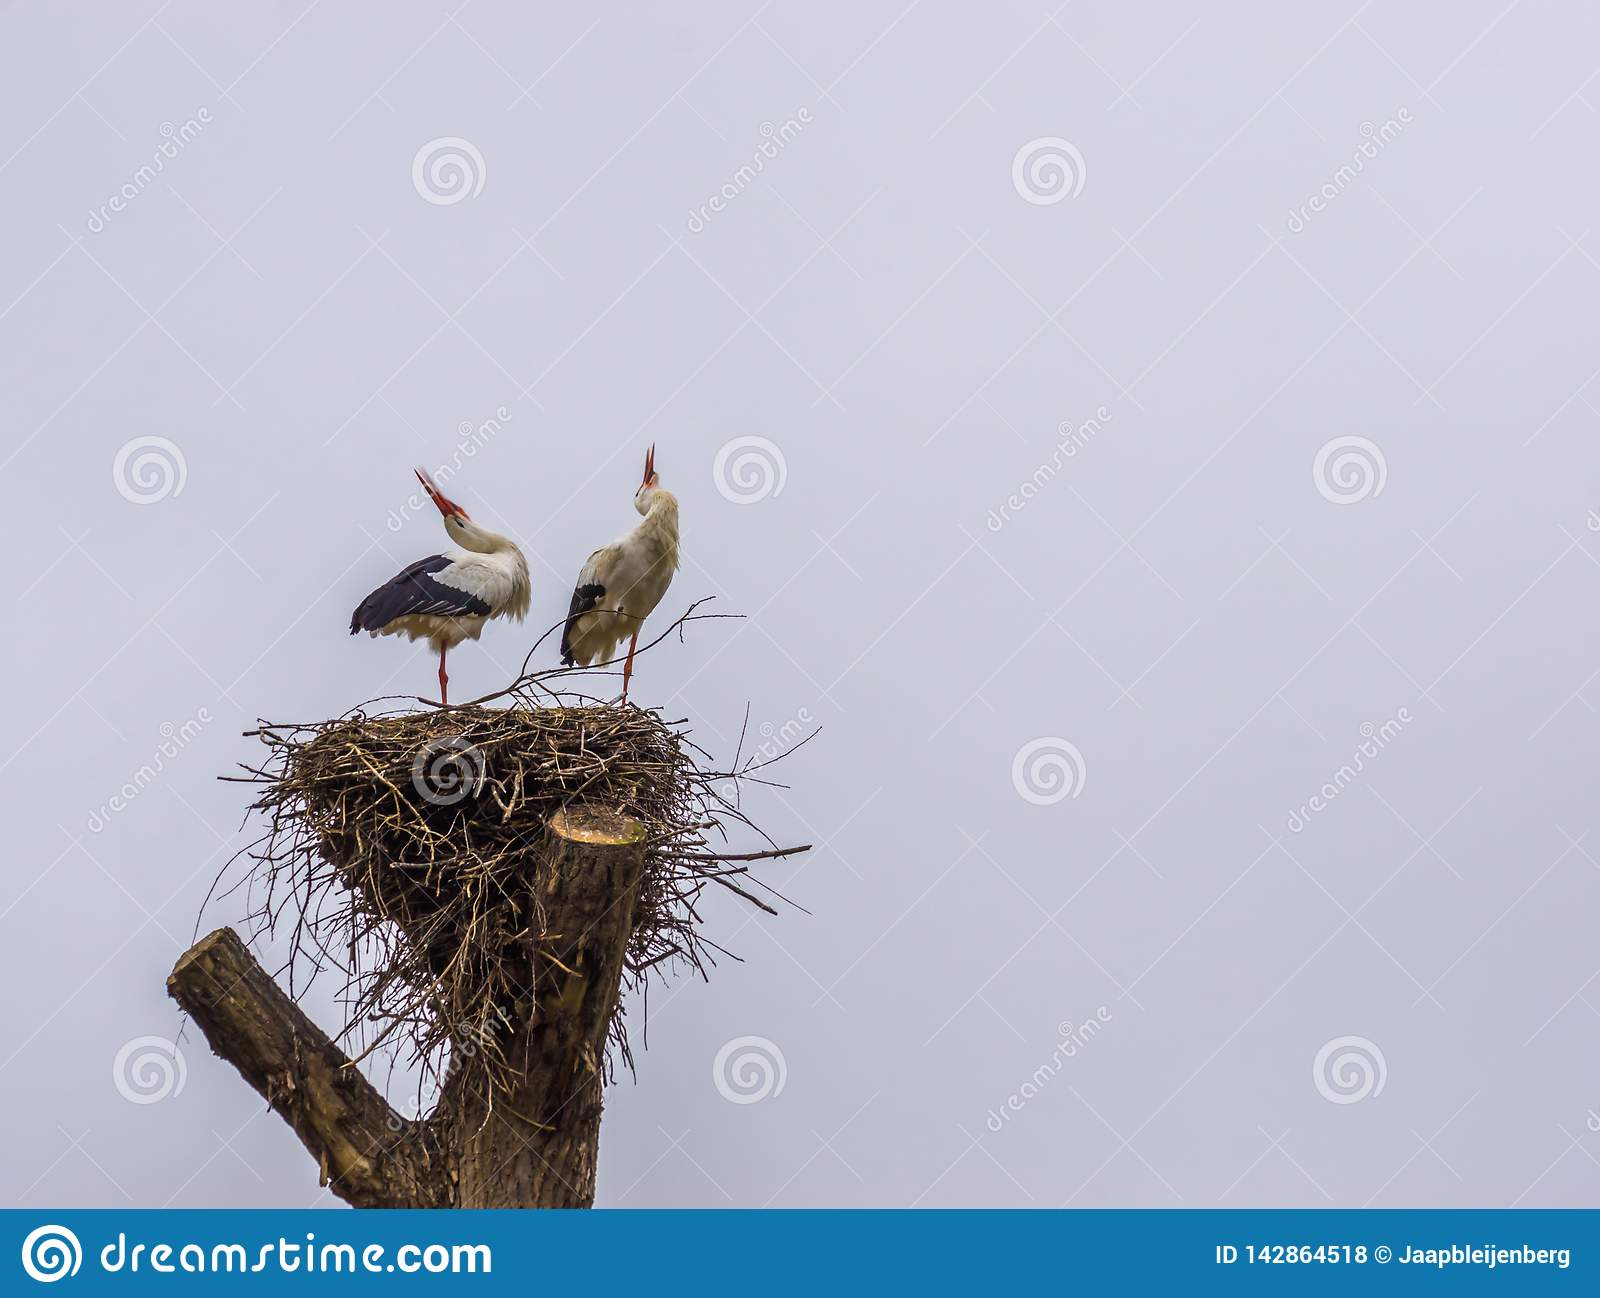 White stork couple in their nest making sound, common birds in europe, Migrated birds from Africa